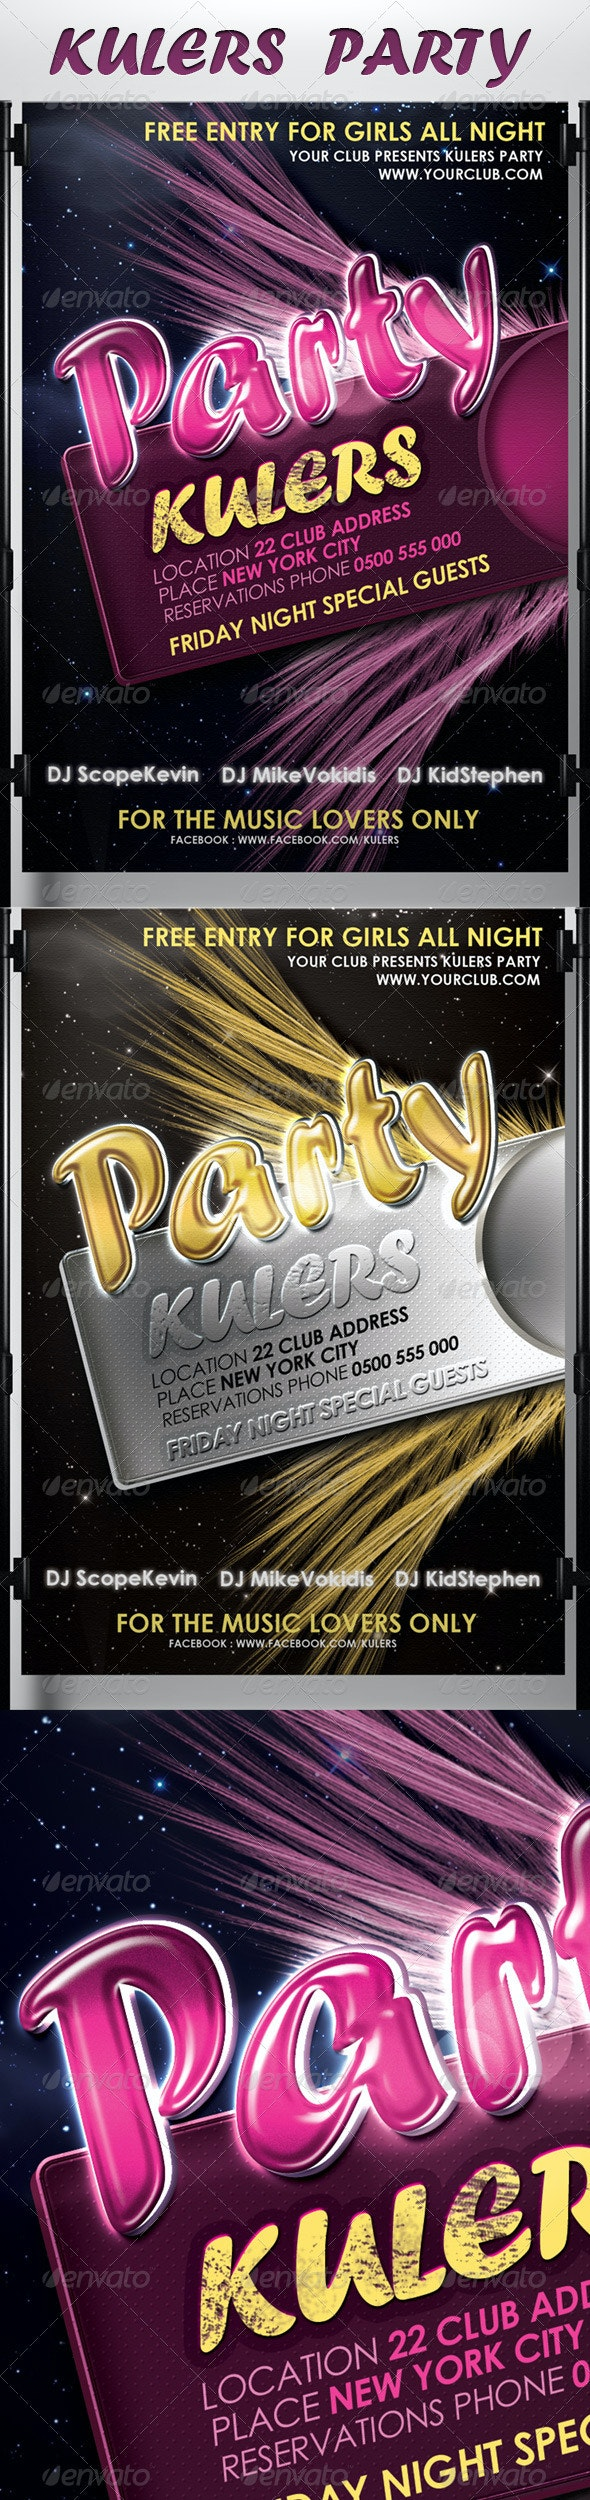 Kulers Party Flyer - Events Flyers